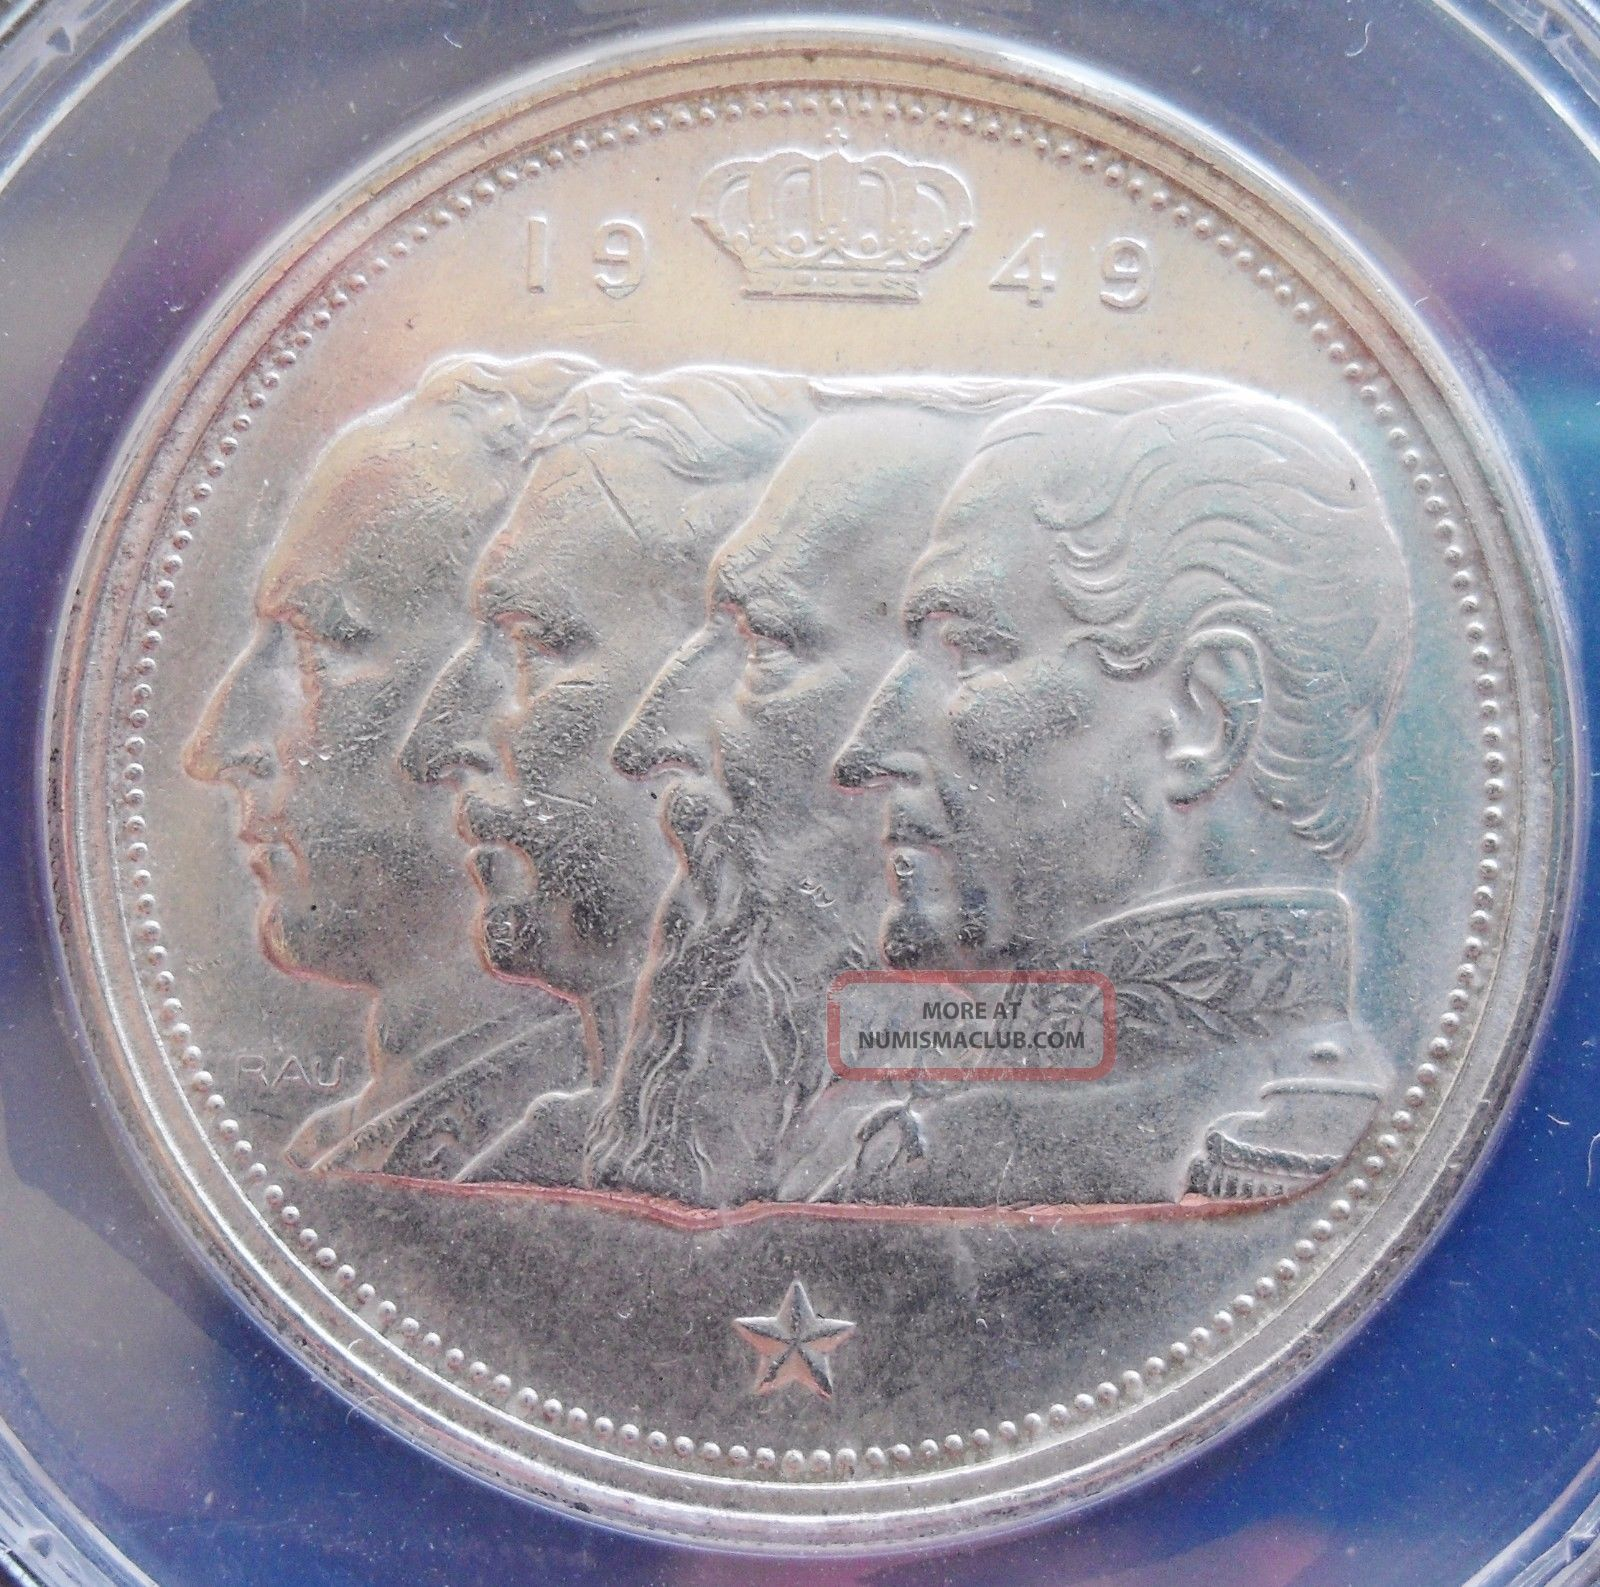 1949 Belgium 100 Fr. ,  Anacs Ms 62,  Silver Coin Europe photo